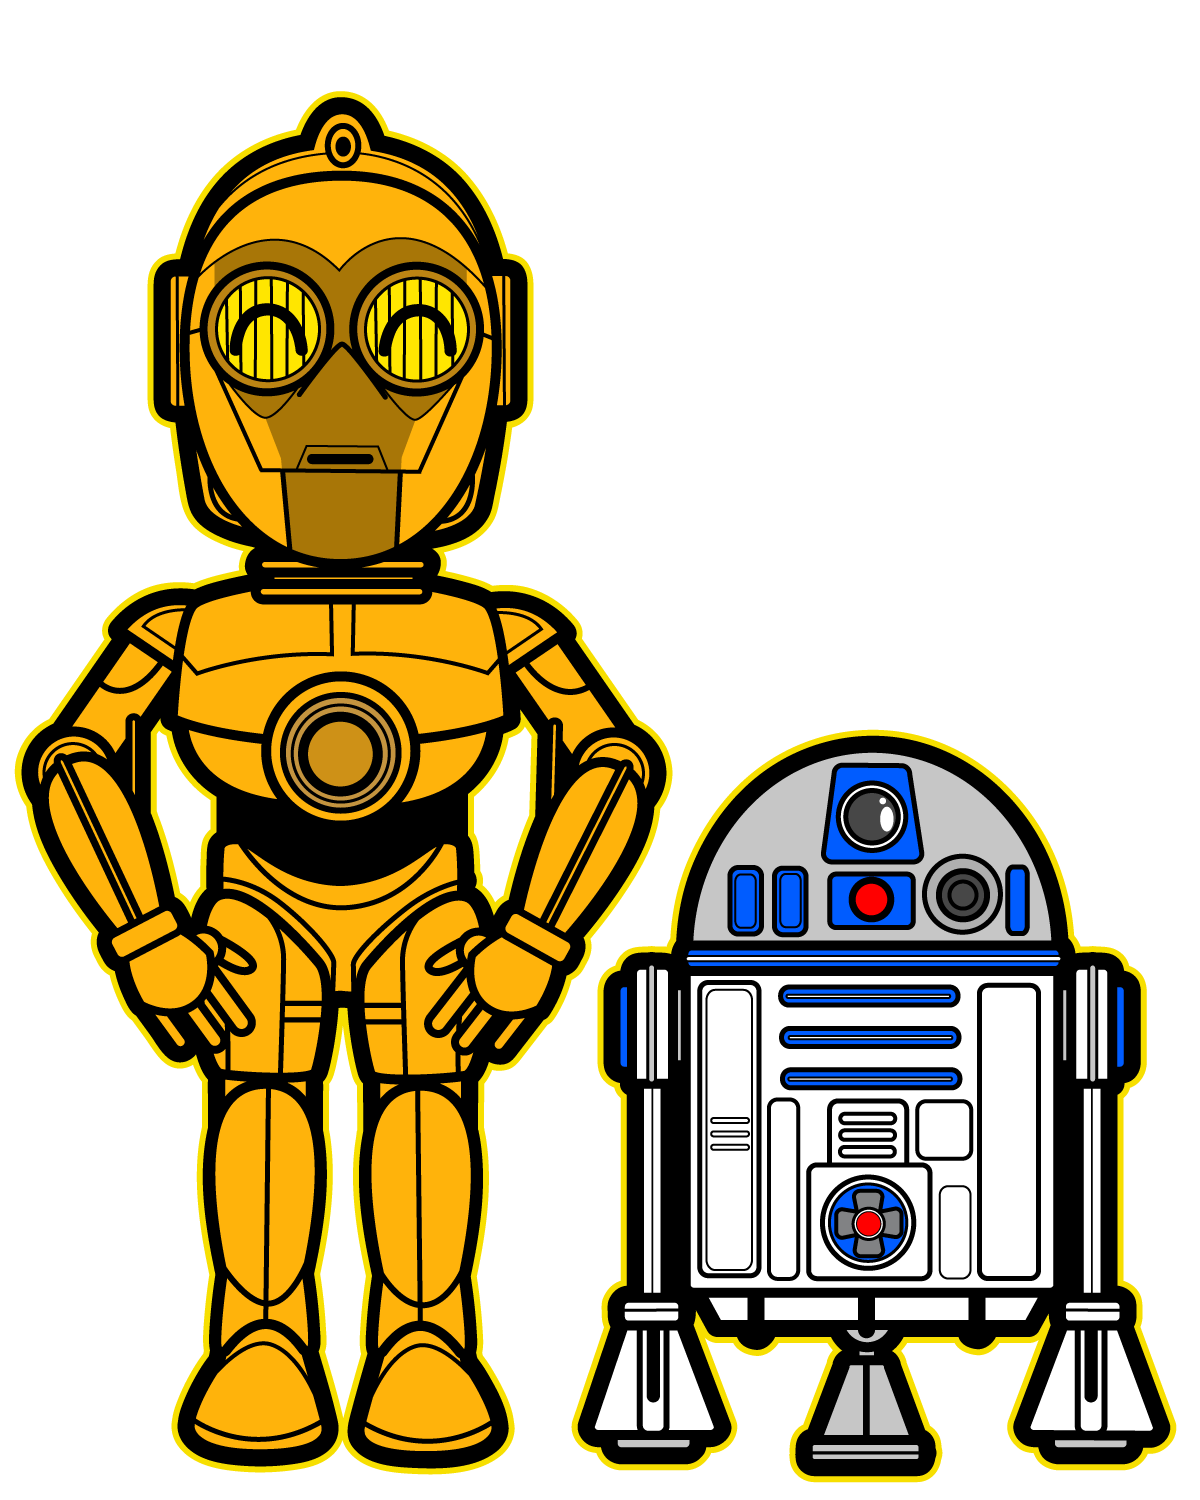 Starwars clipart c3p0. R d and c